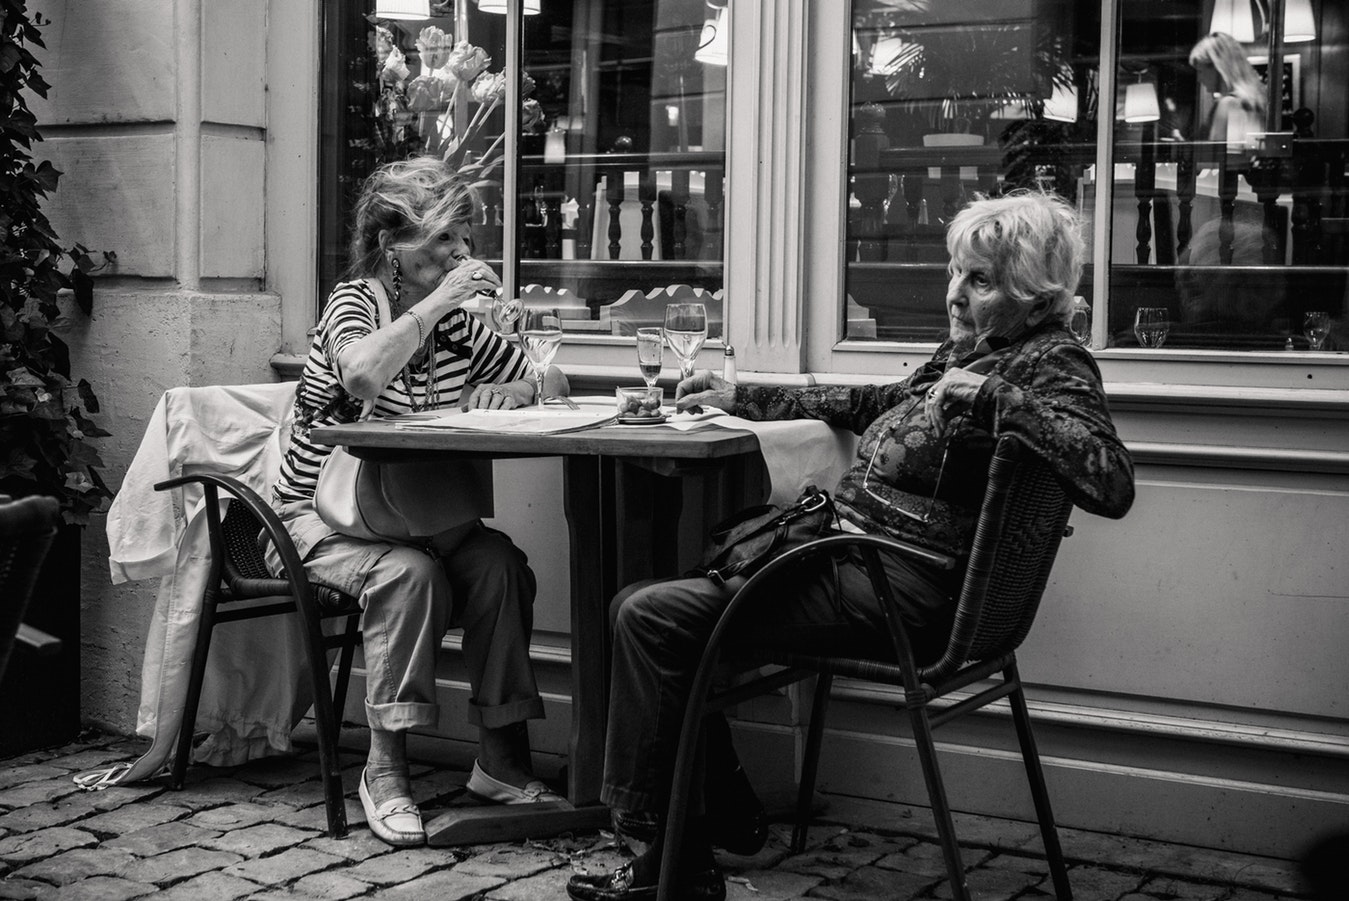 Two elderly woman sitting at a cafe at night